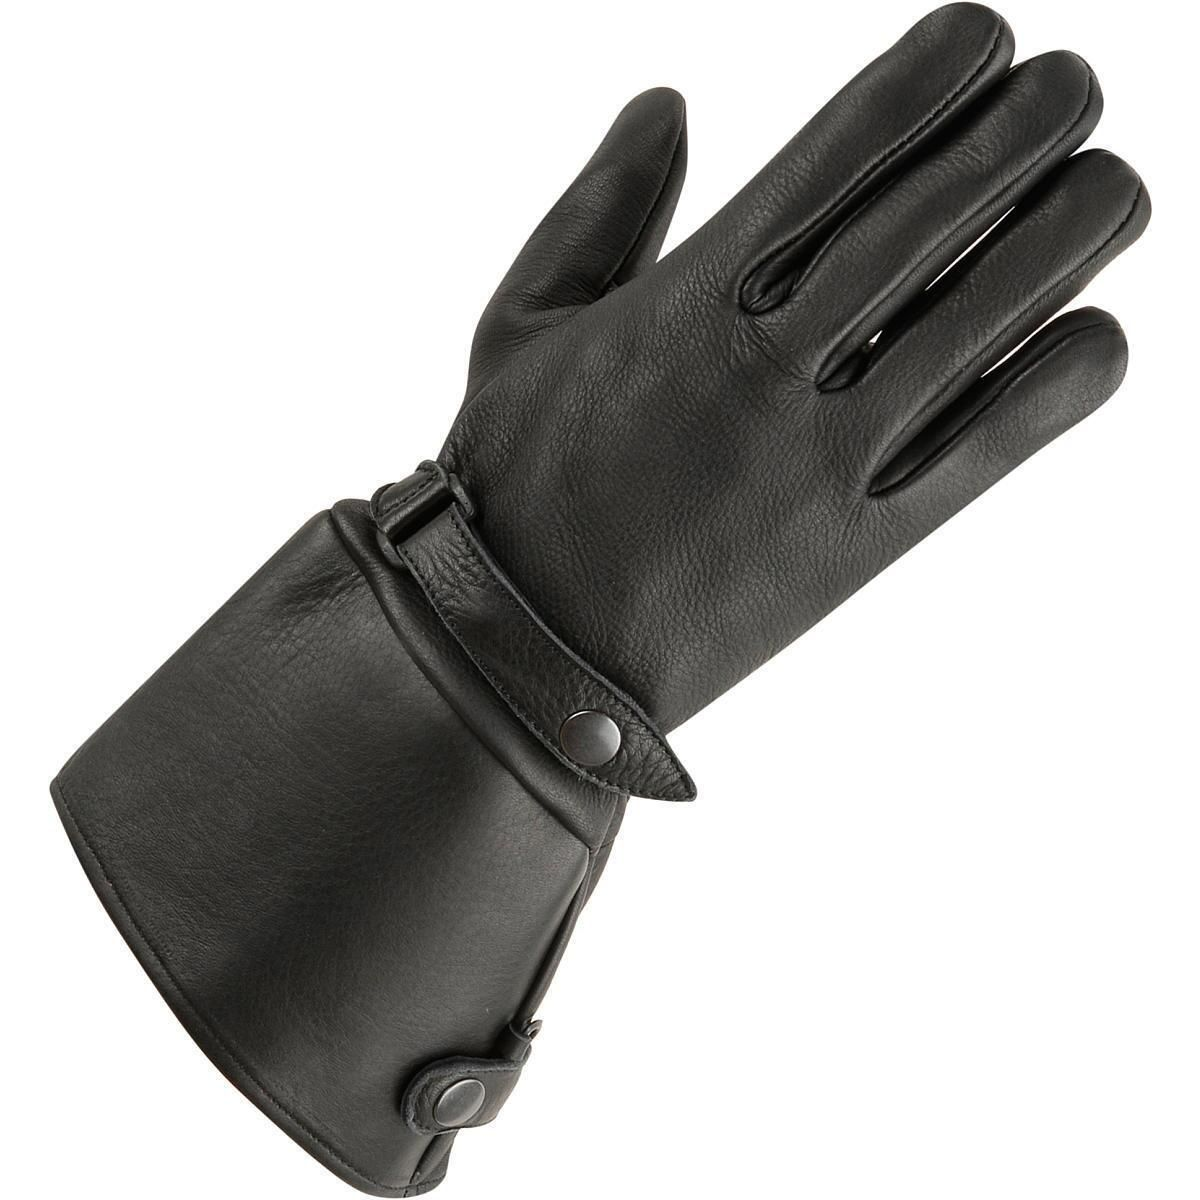 Motorcycle leather gloves amazon - Motorcycle Leather Gloves Amazon 48